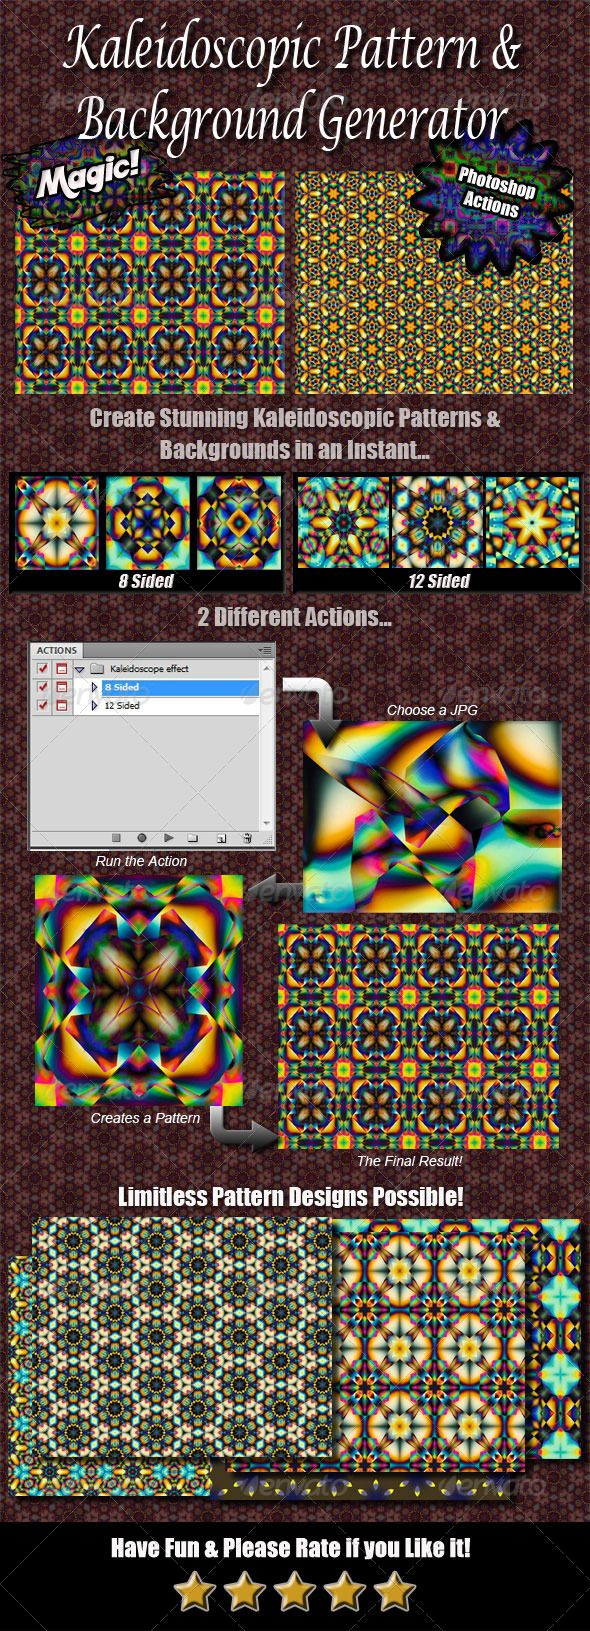 Download https jquery css de article itmid 1004544332i html kaleidoscope pattern background generator action background creator customize